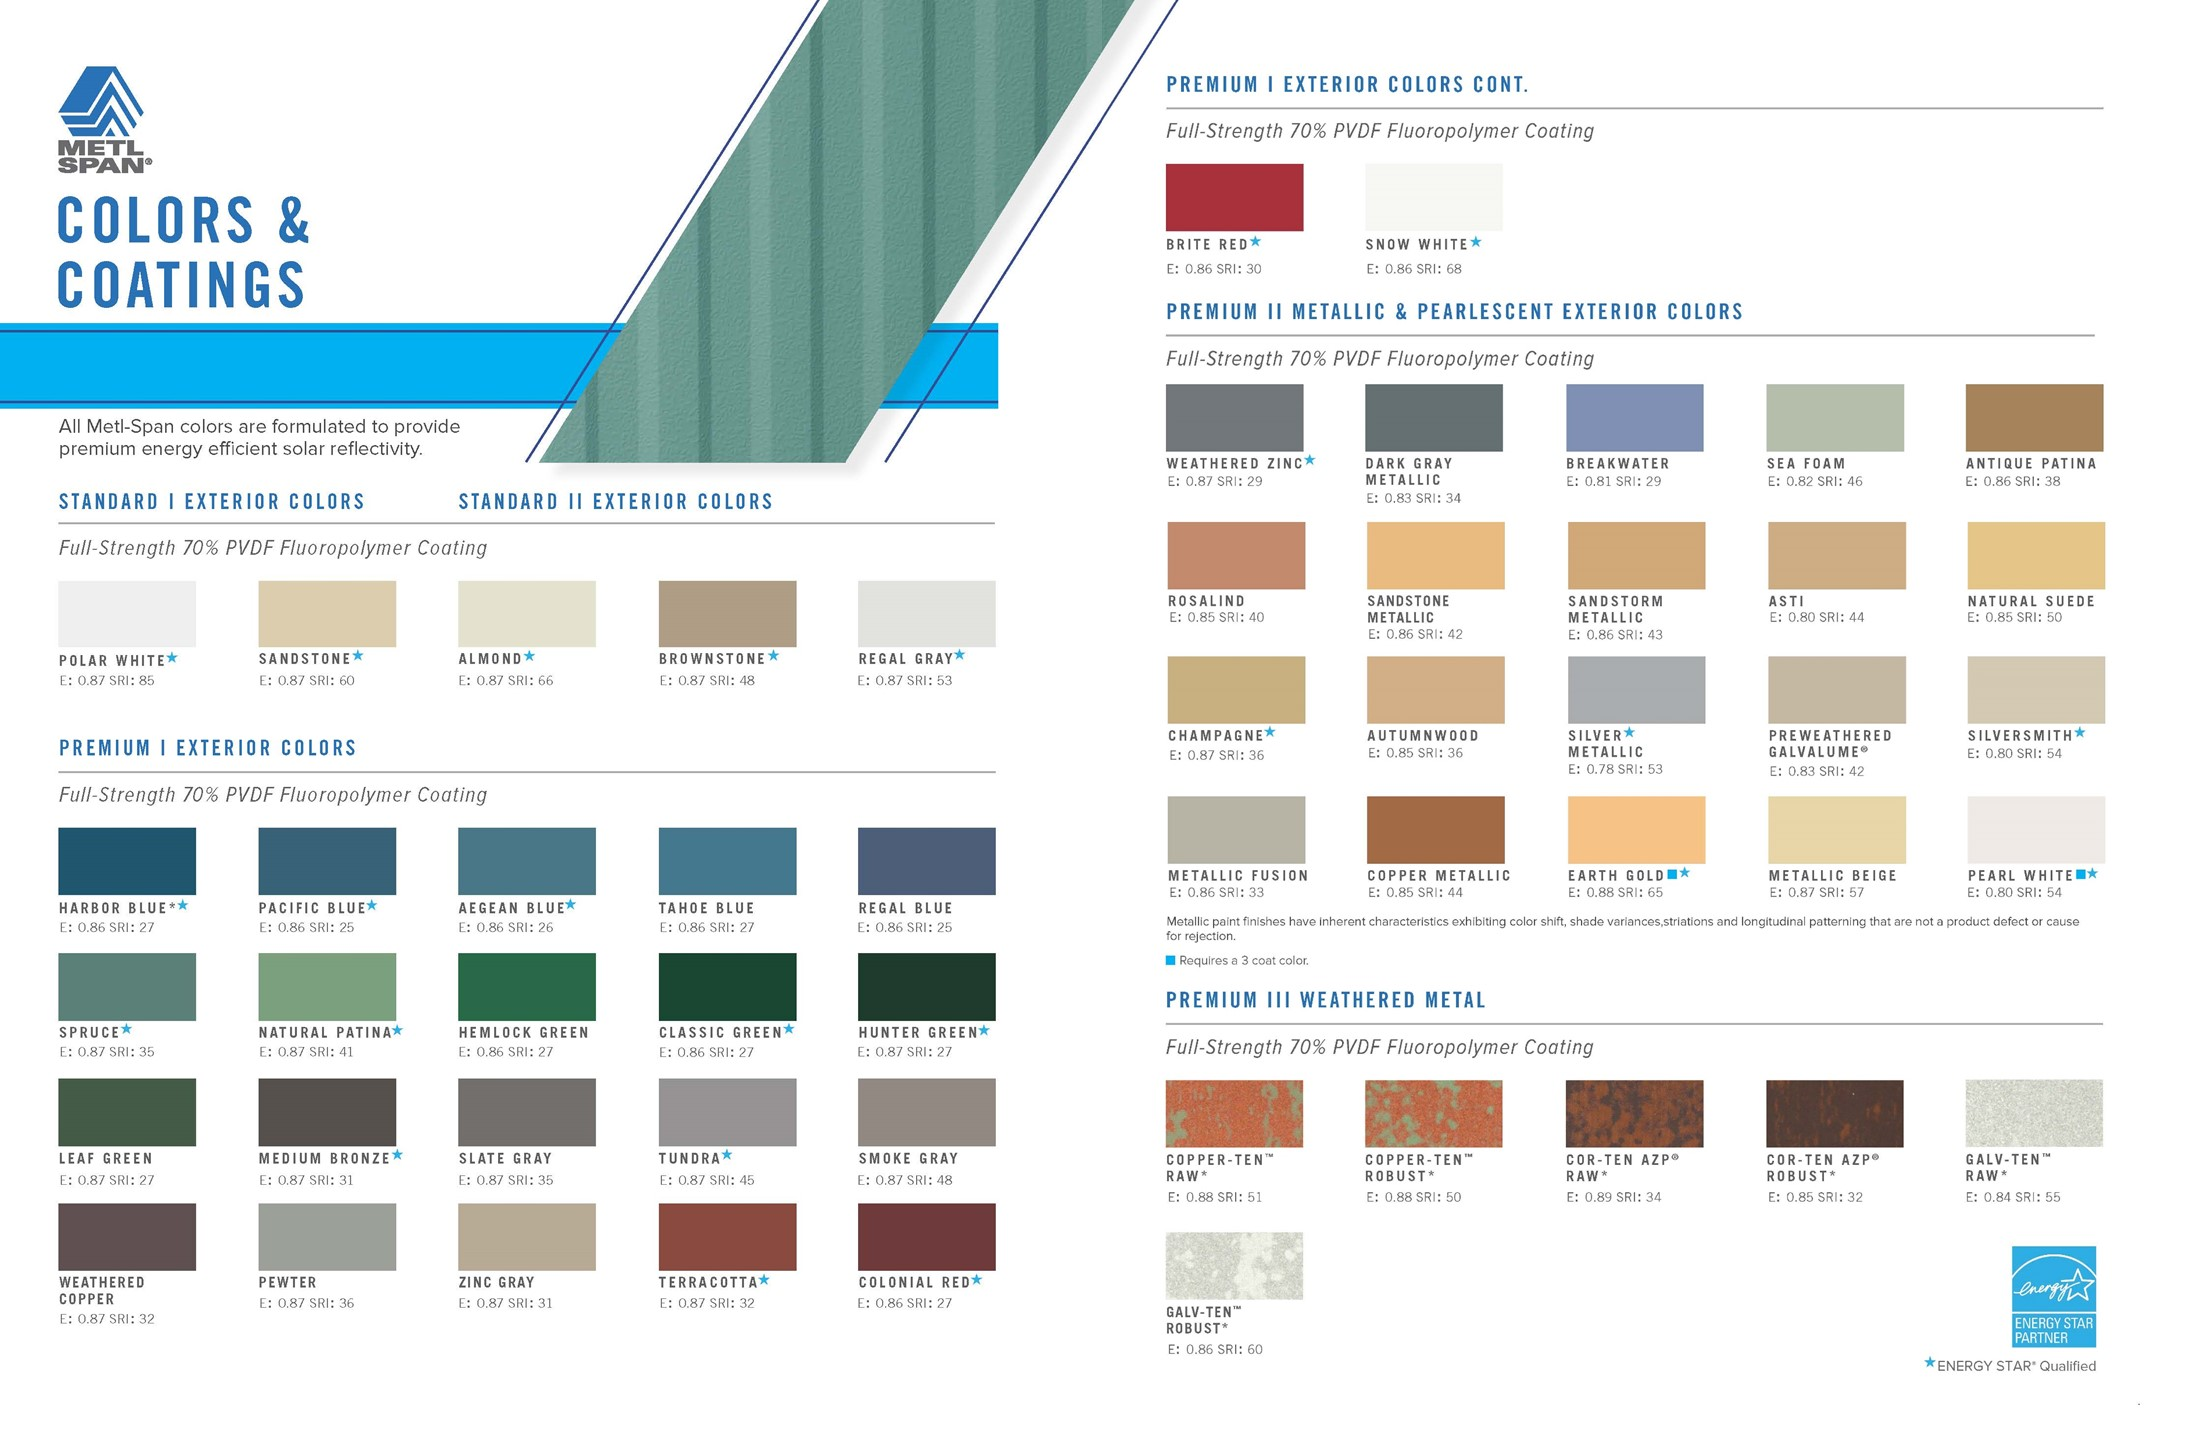 Colors - Metl-Span, Insulated Wall Panels, Roof Panels